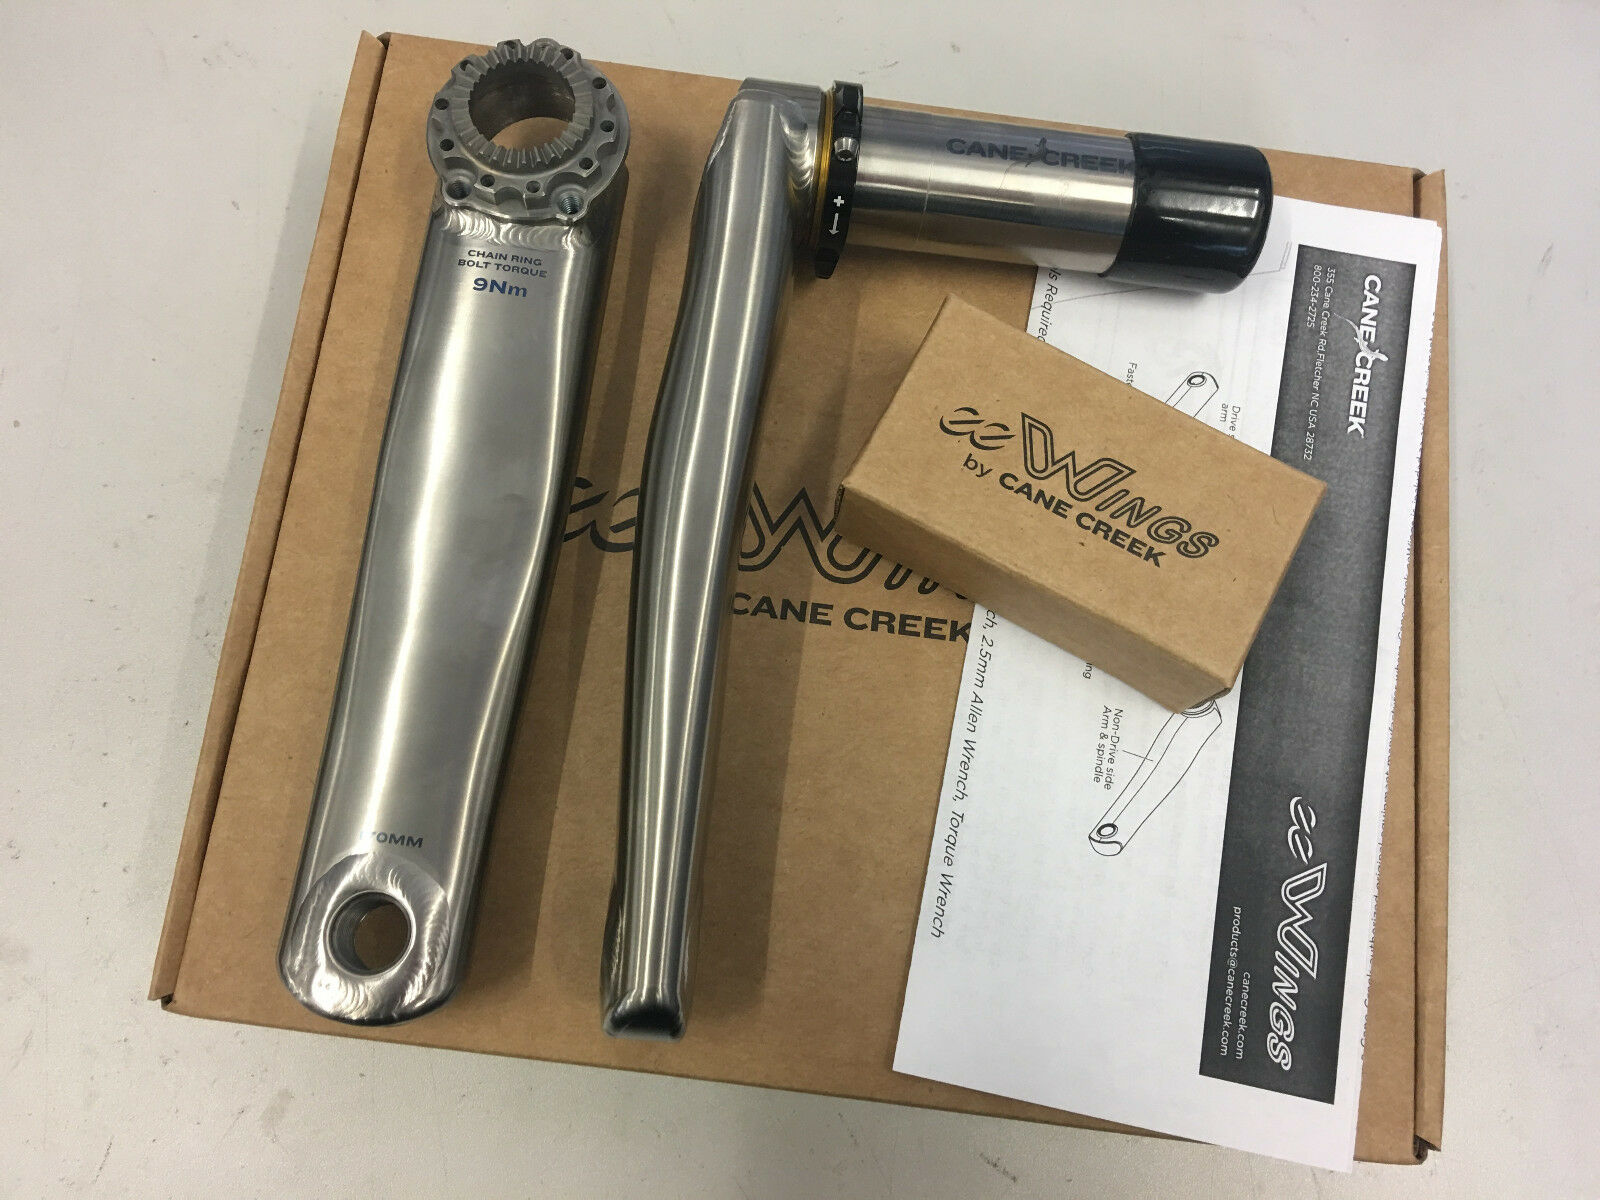 Cane  Creek eeWings 172.5mm 68x30 Axle All Road Titanium Cranks  BAI0046  factory direct and quick delivery